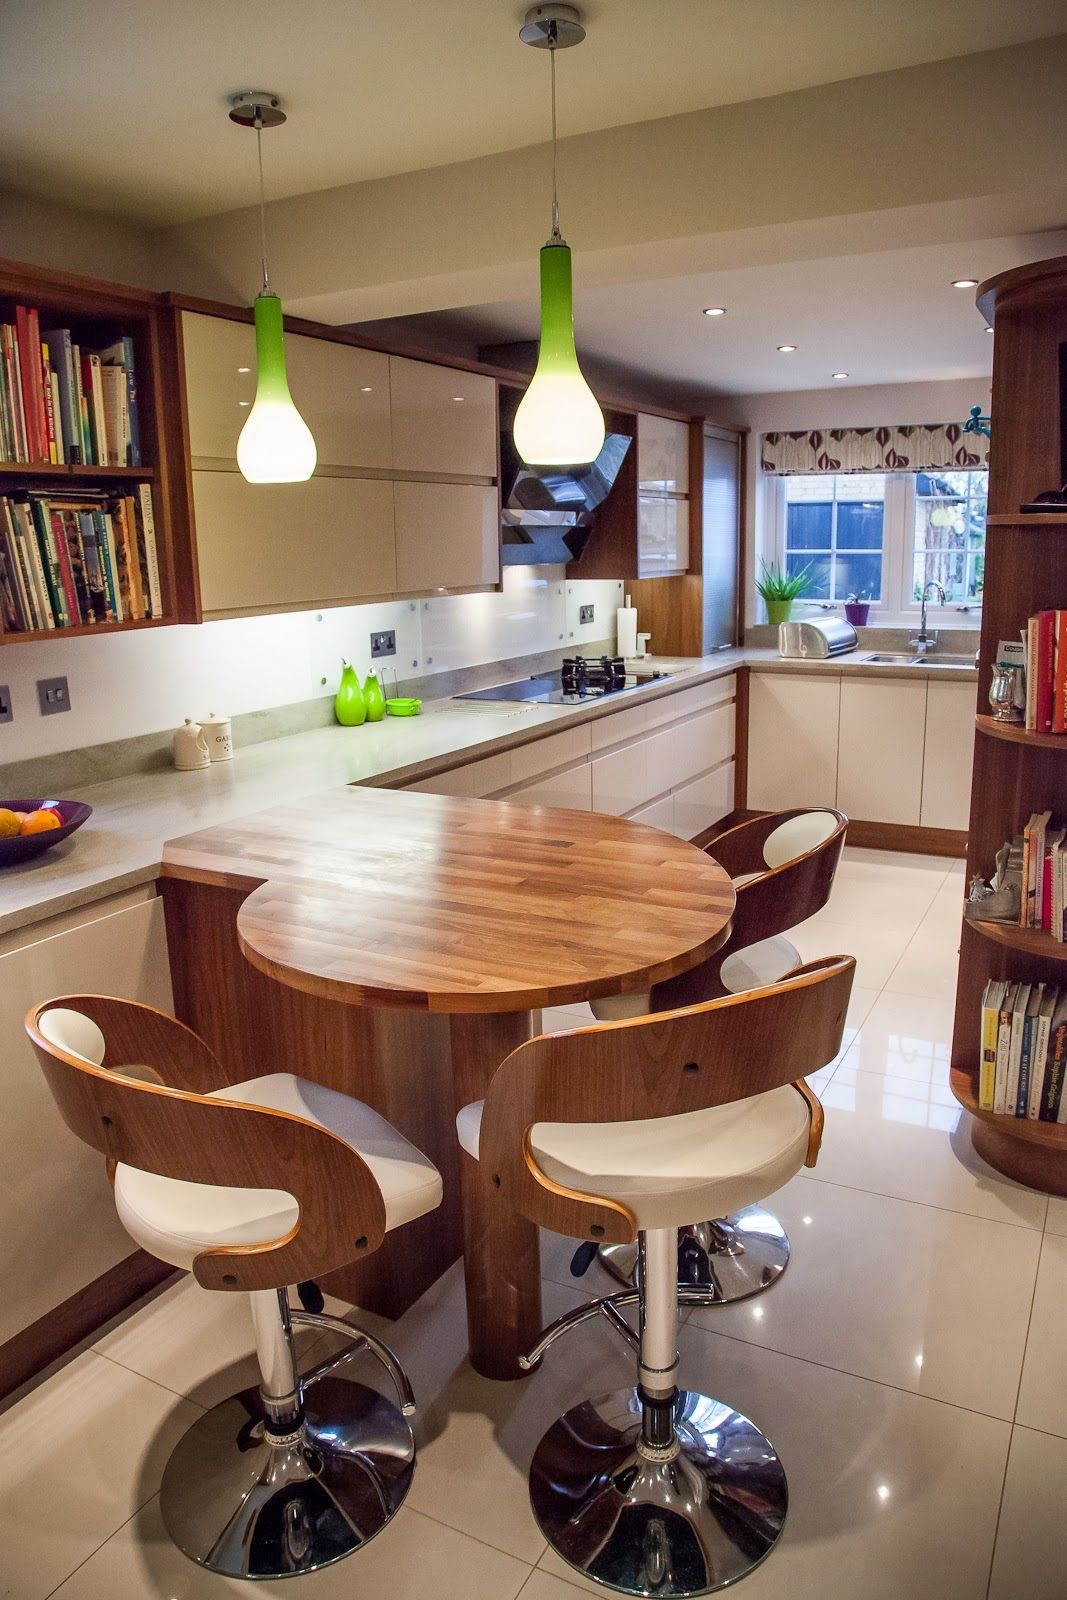 Wooden Round Breakfast Bar Situating Under Lime Green Modern Pendants With Back White Stools Surrounds Kitchen Design Completed Stunning